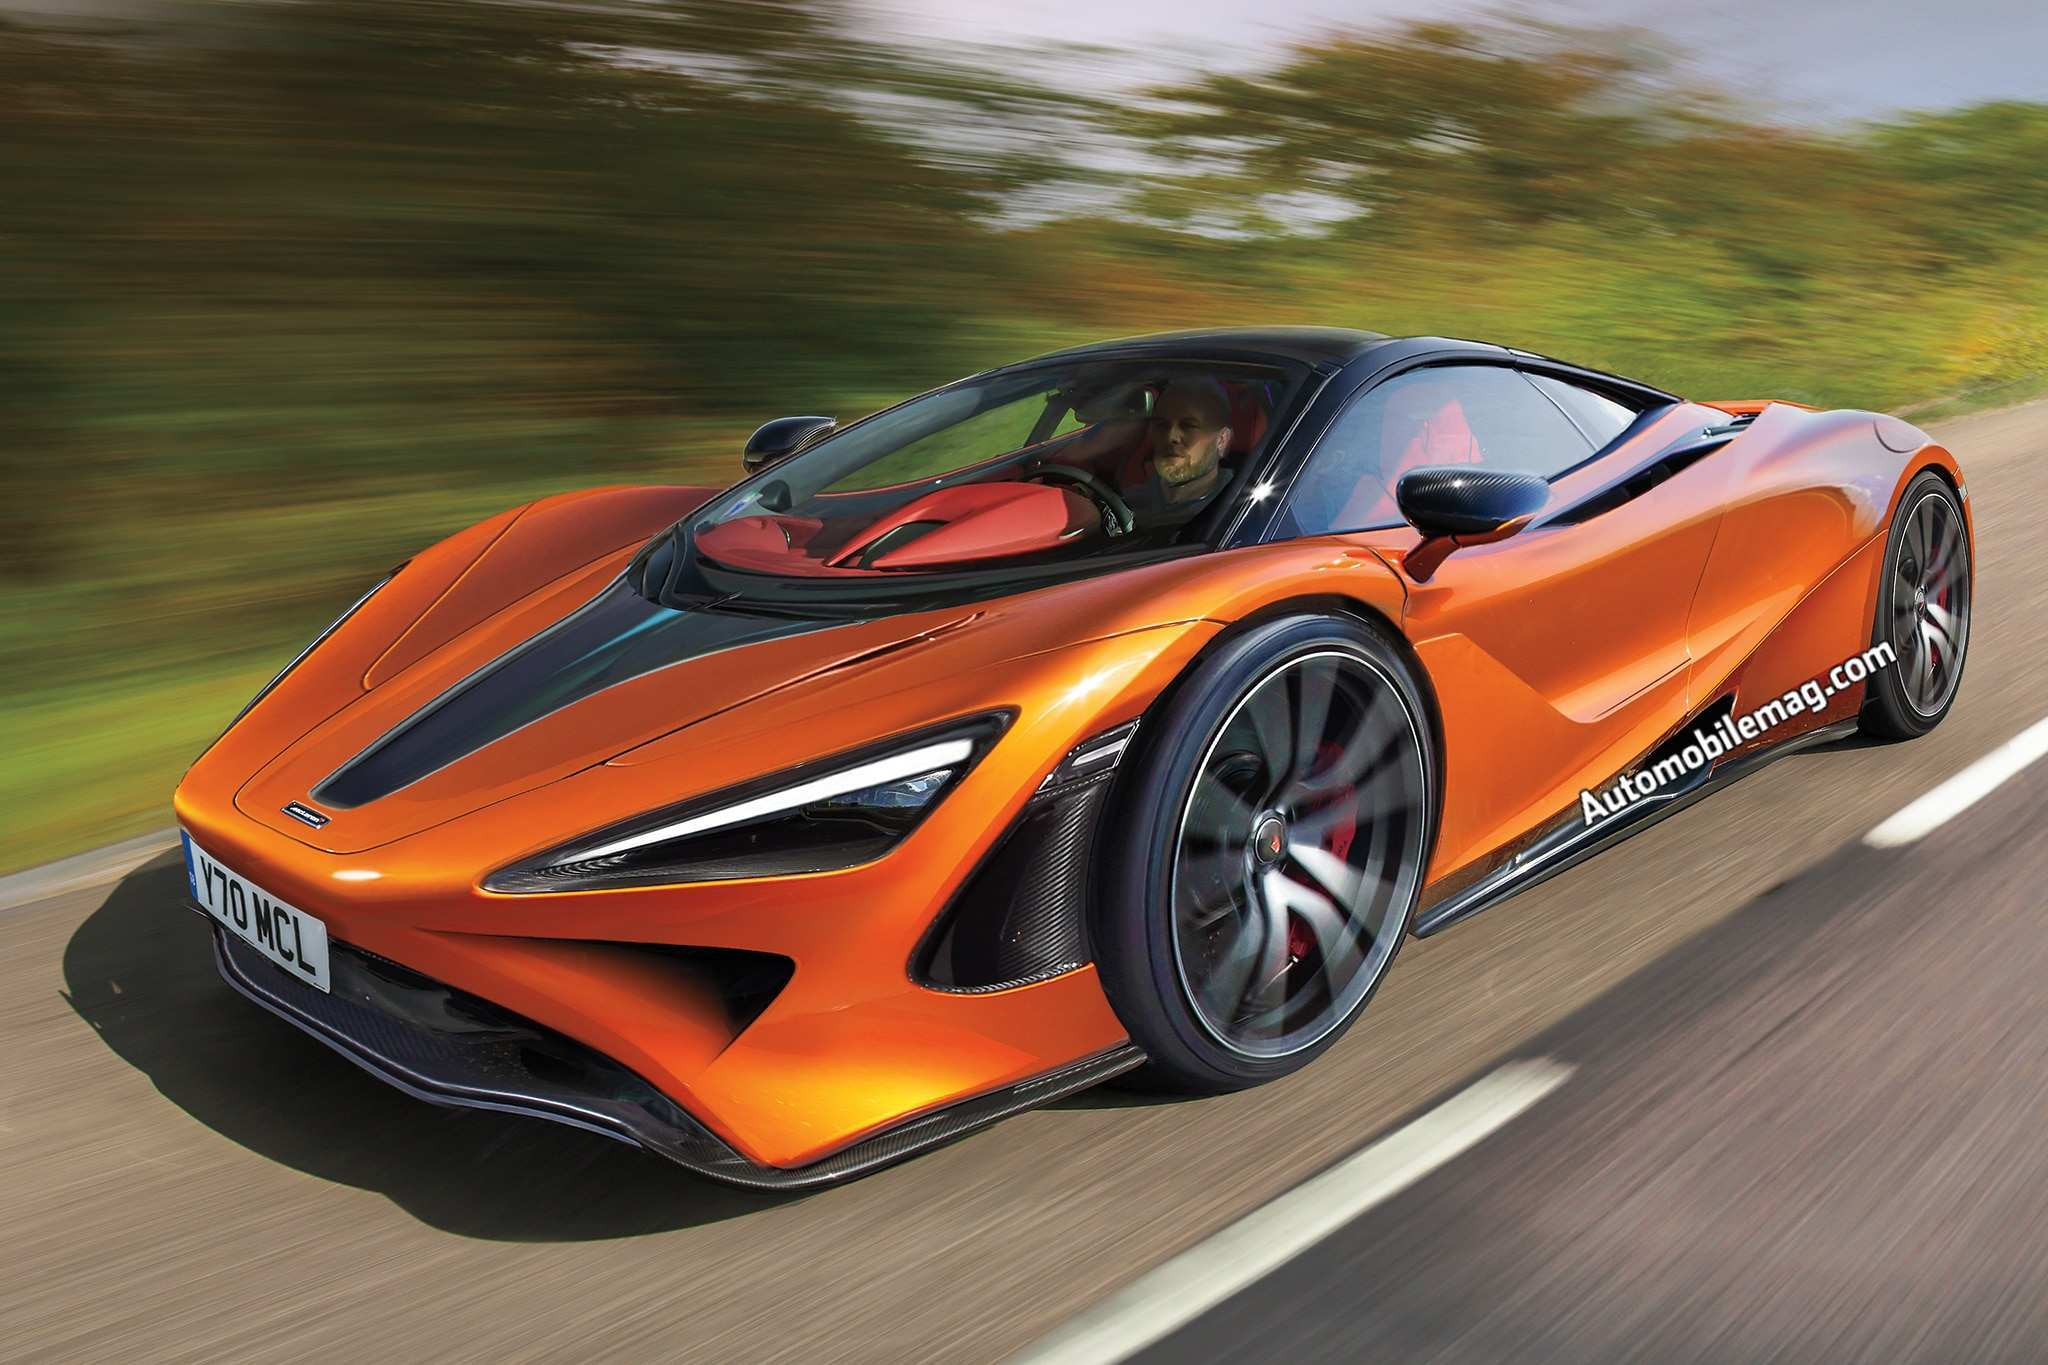 98 The 2020 Mclaren New Review for 2020 Mclaren